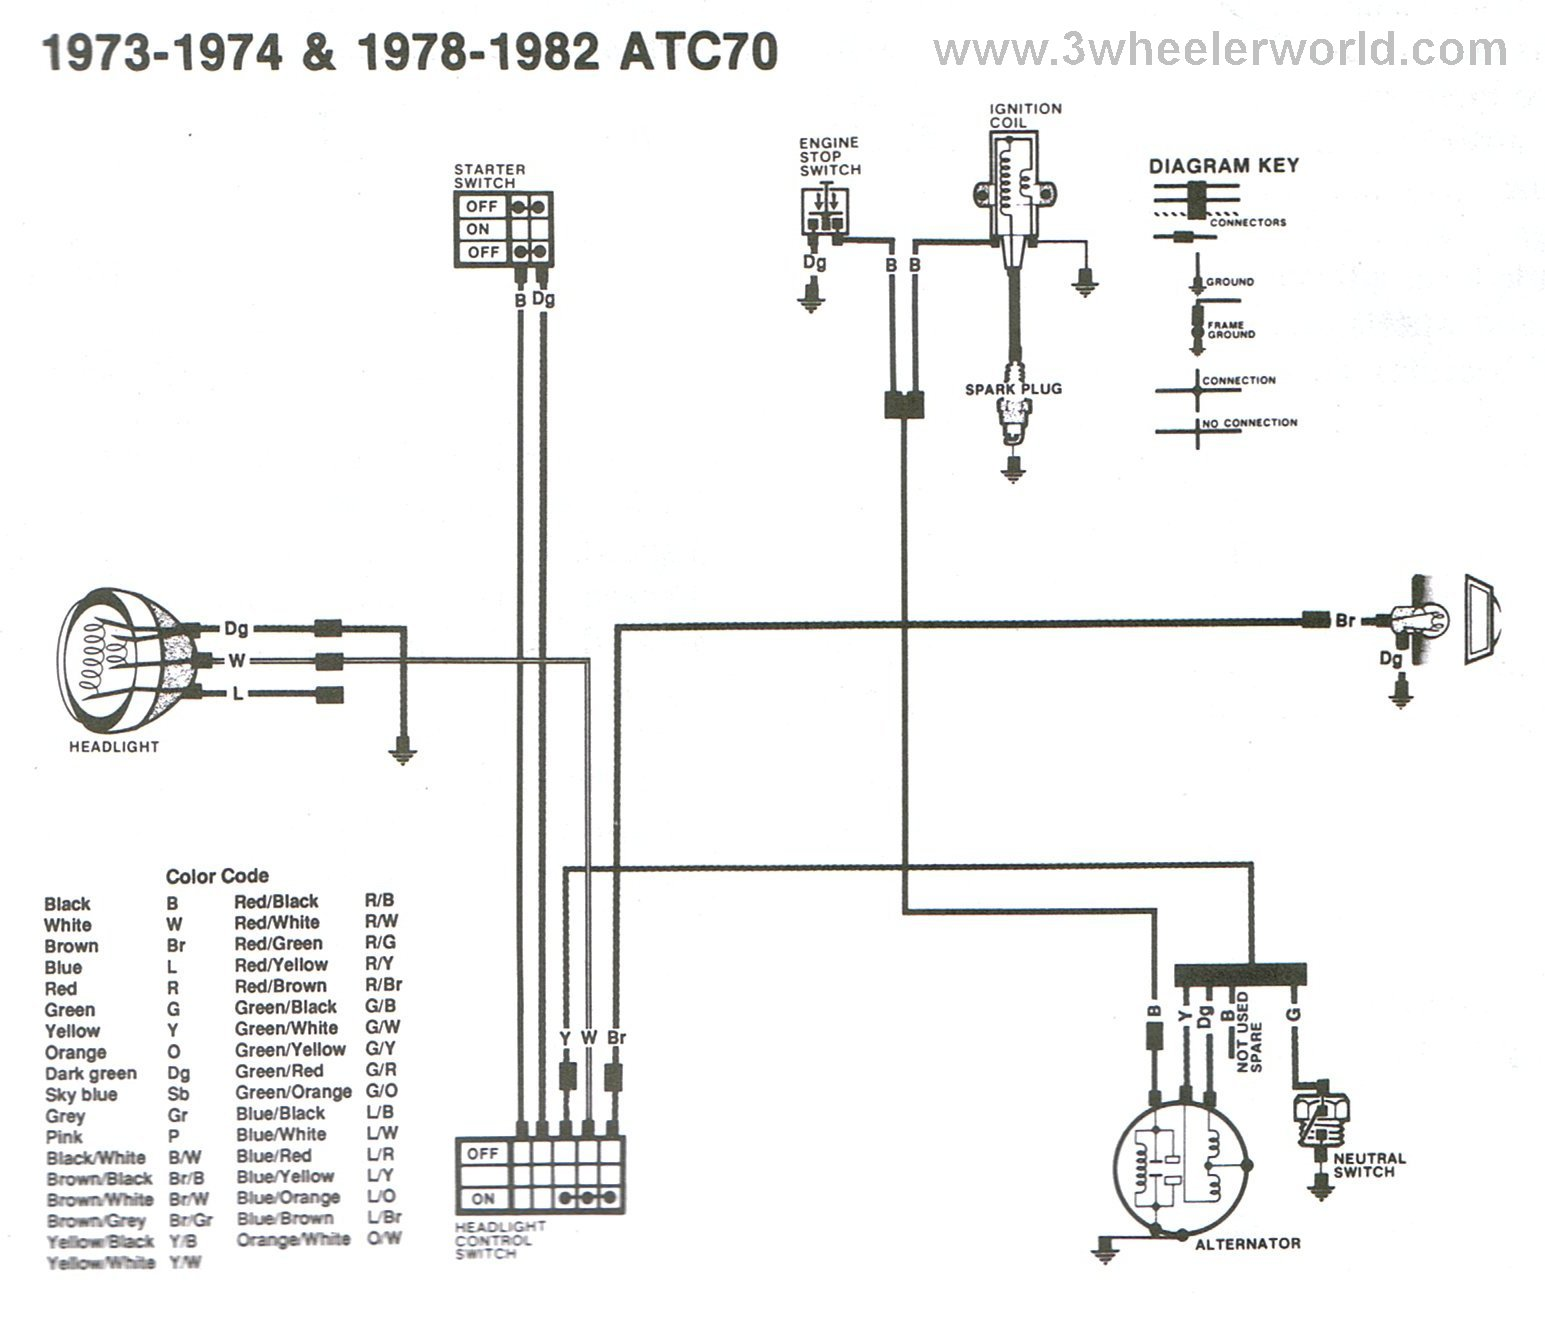 hight resolution of atc70 1973 1974 1978 thru 1982